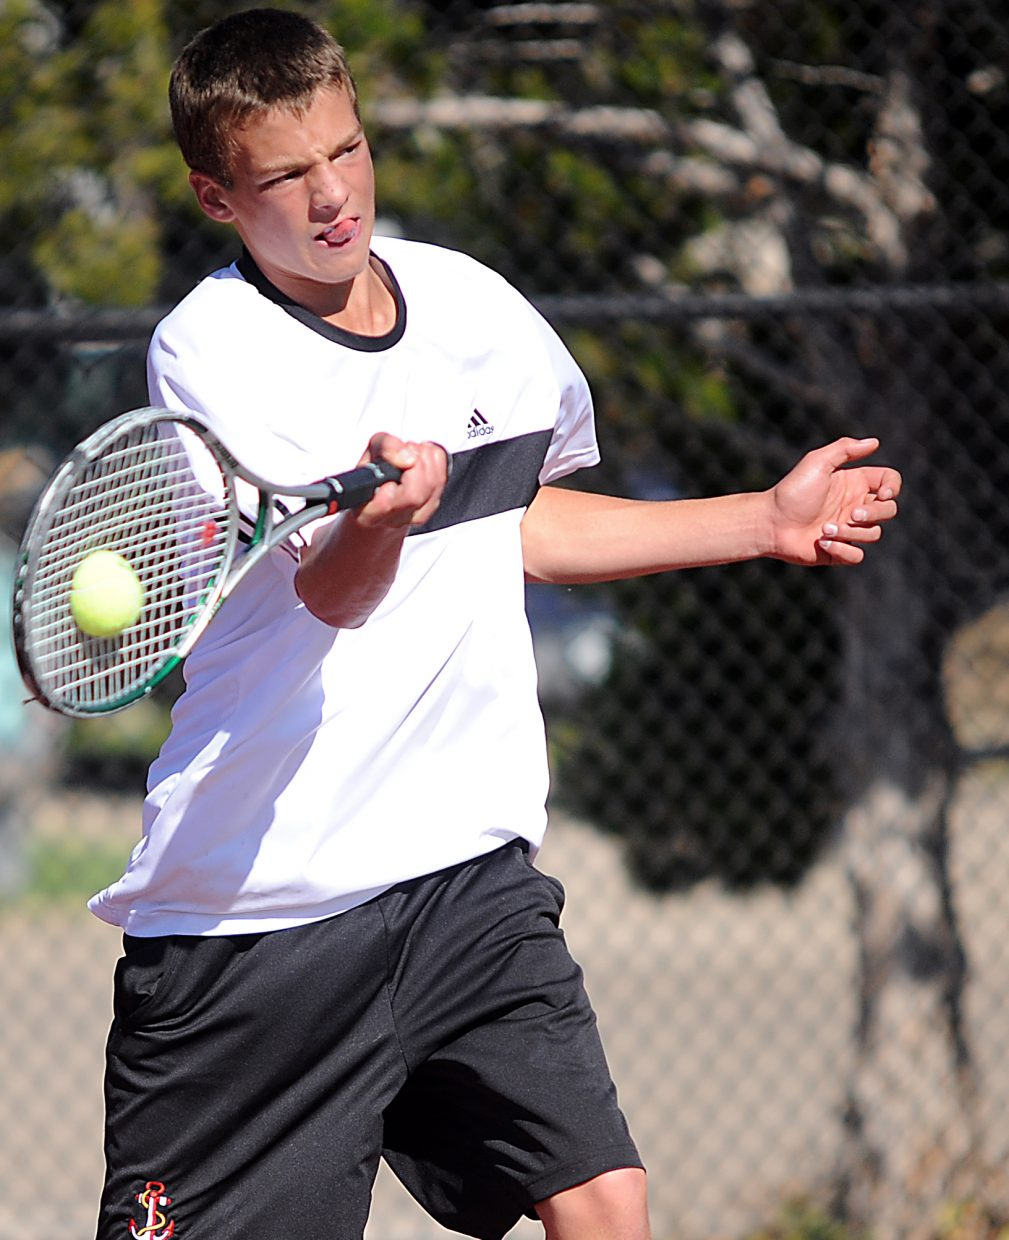 Keegan Burger crushes a return Friday at the state tennis tournament in Pueblo.